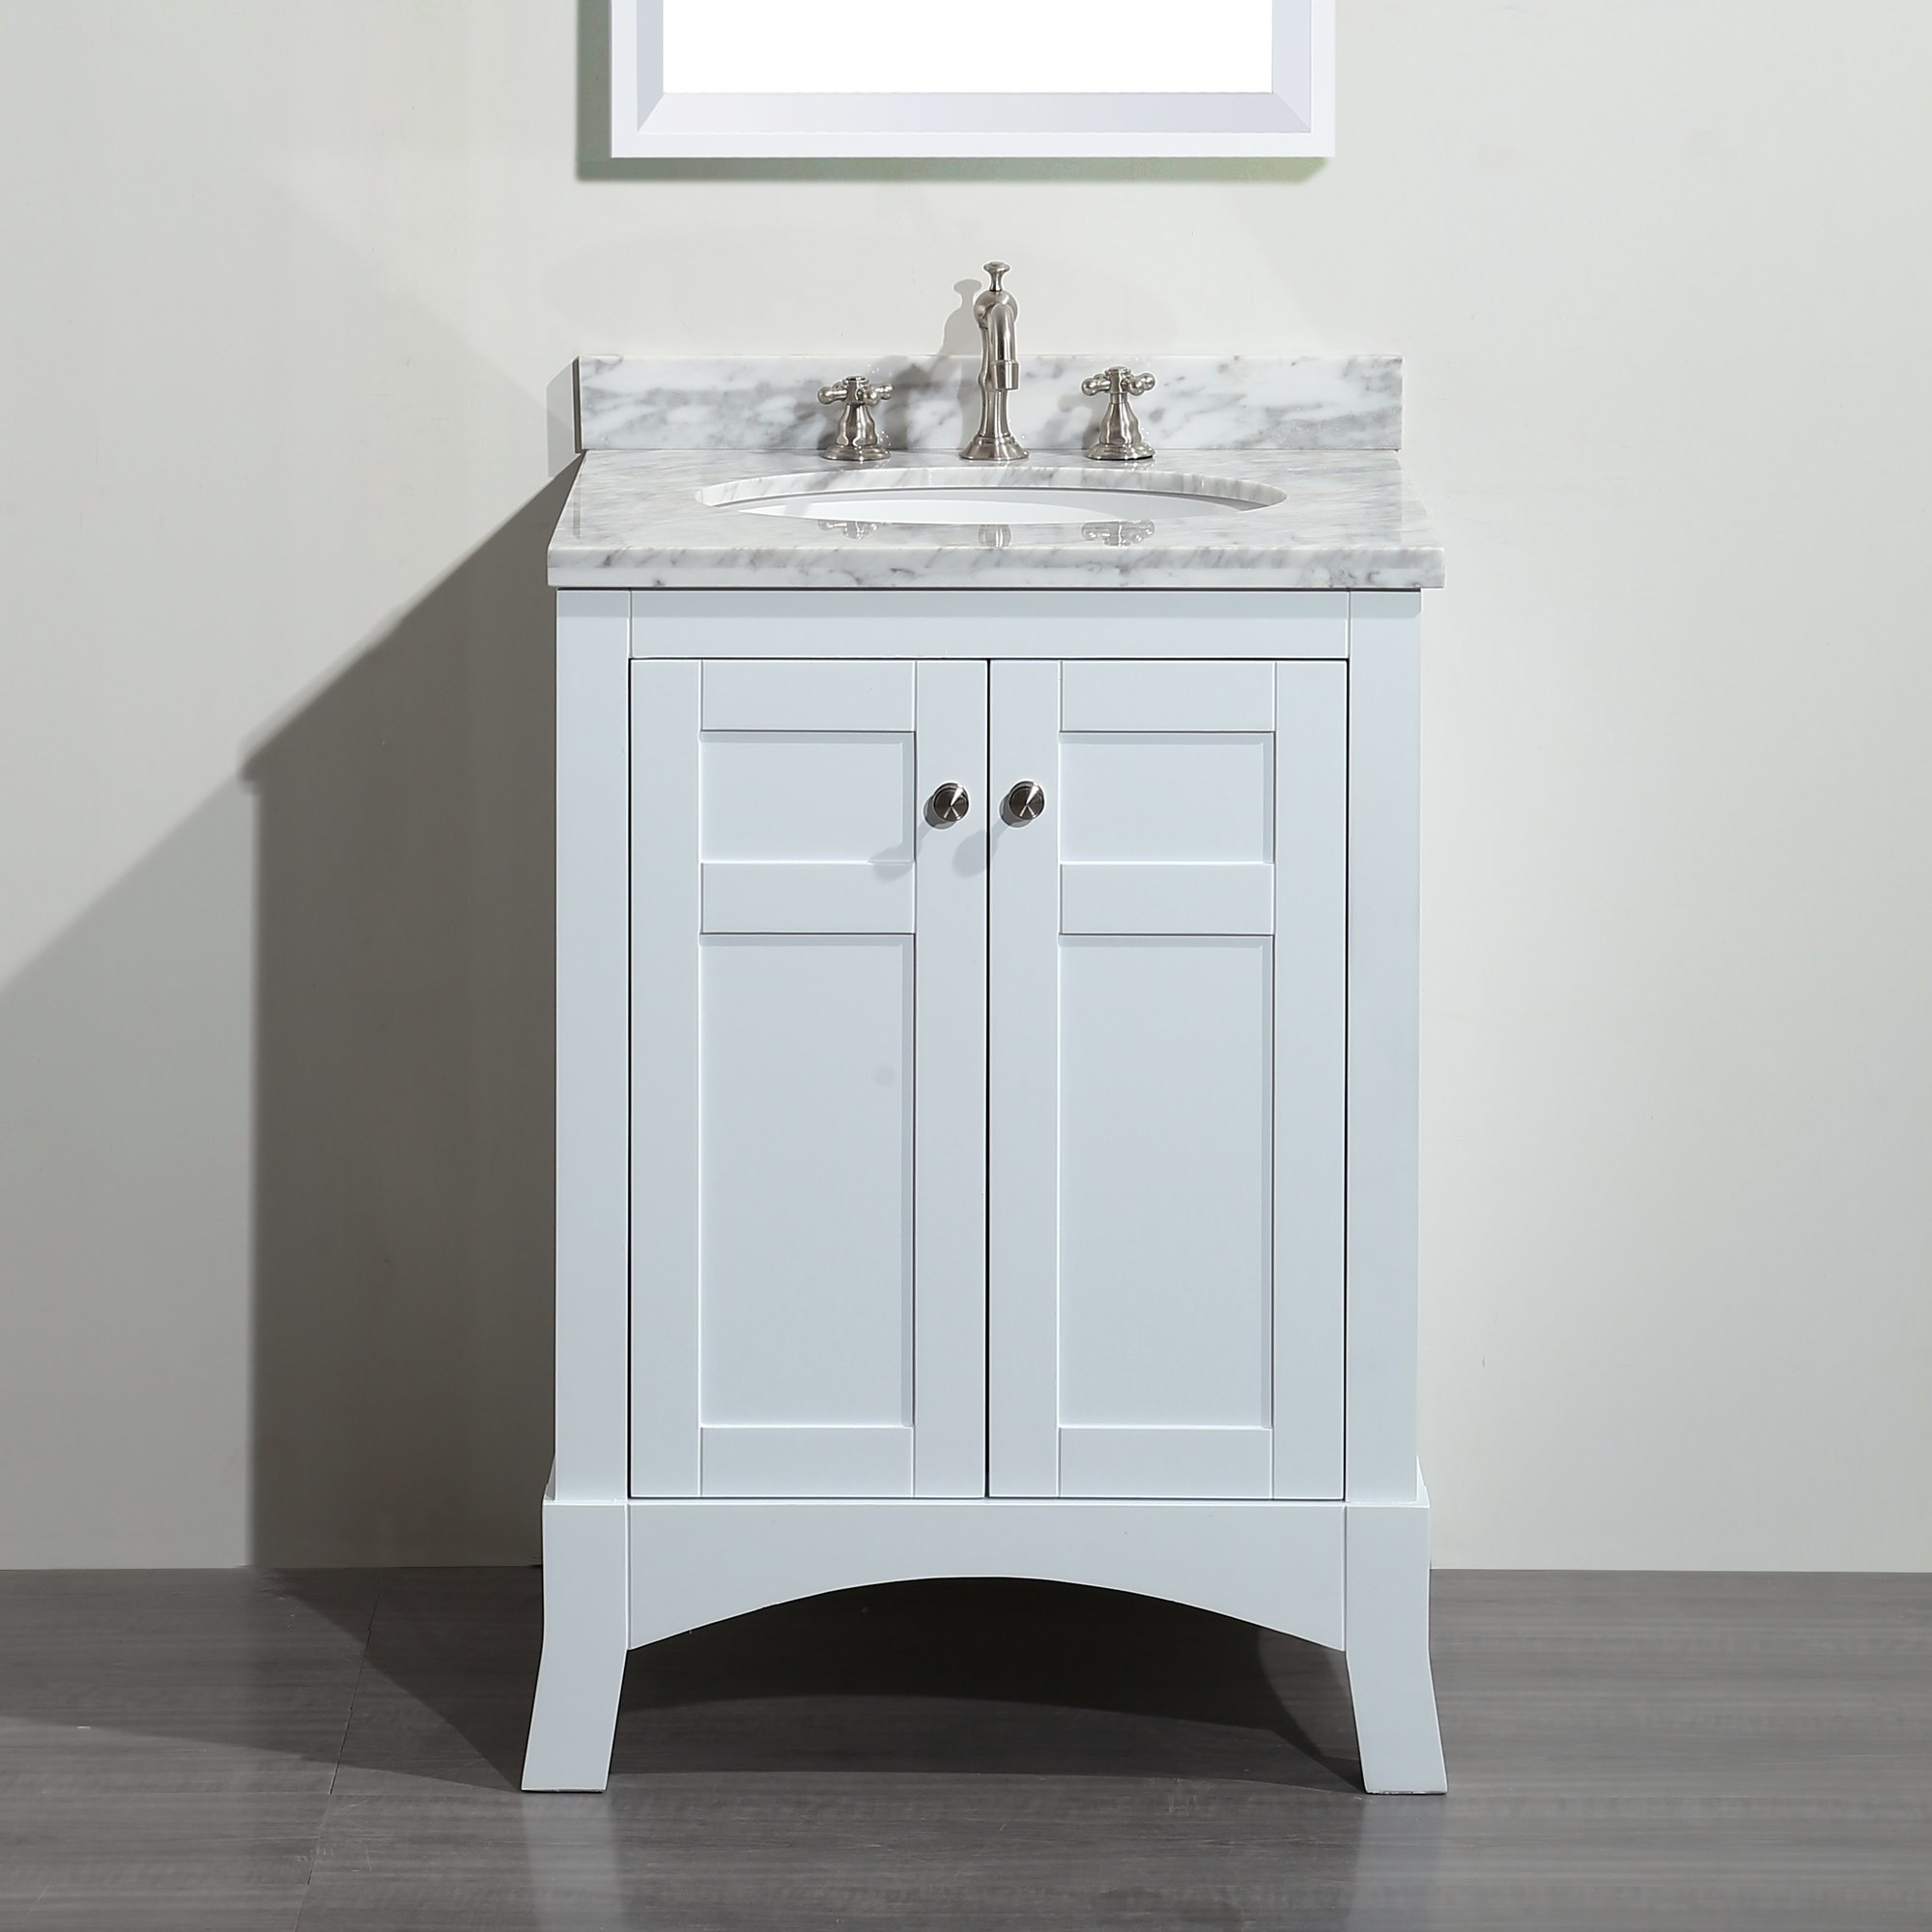 Permalink to Bathroom Vanity 24 Inches Deep